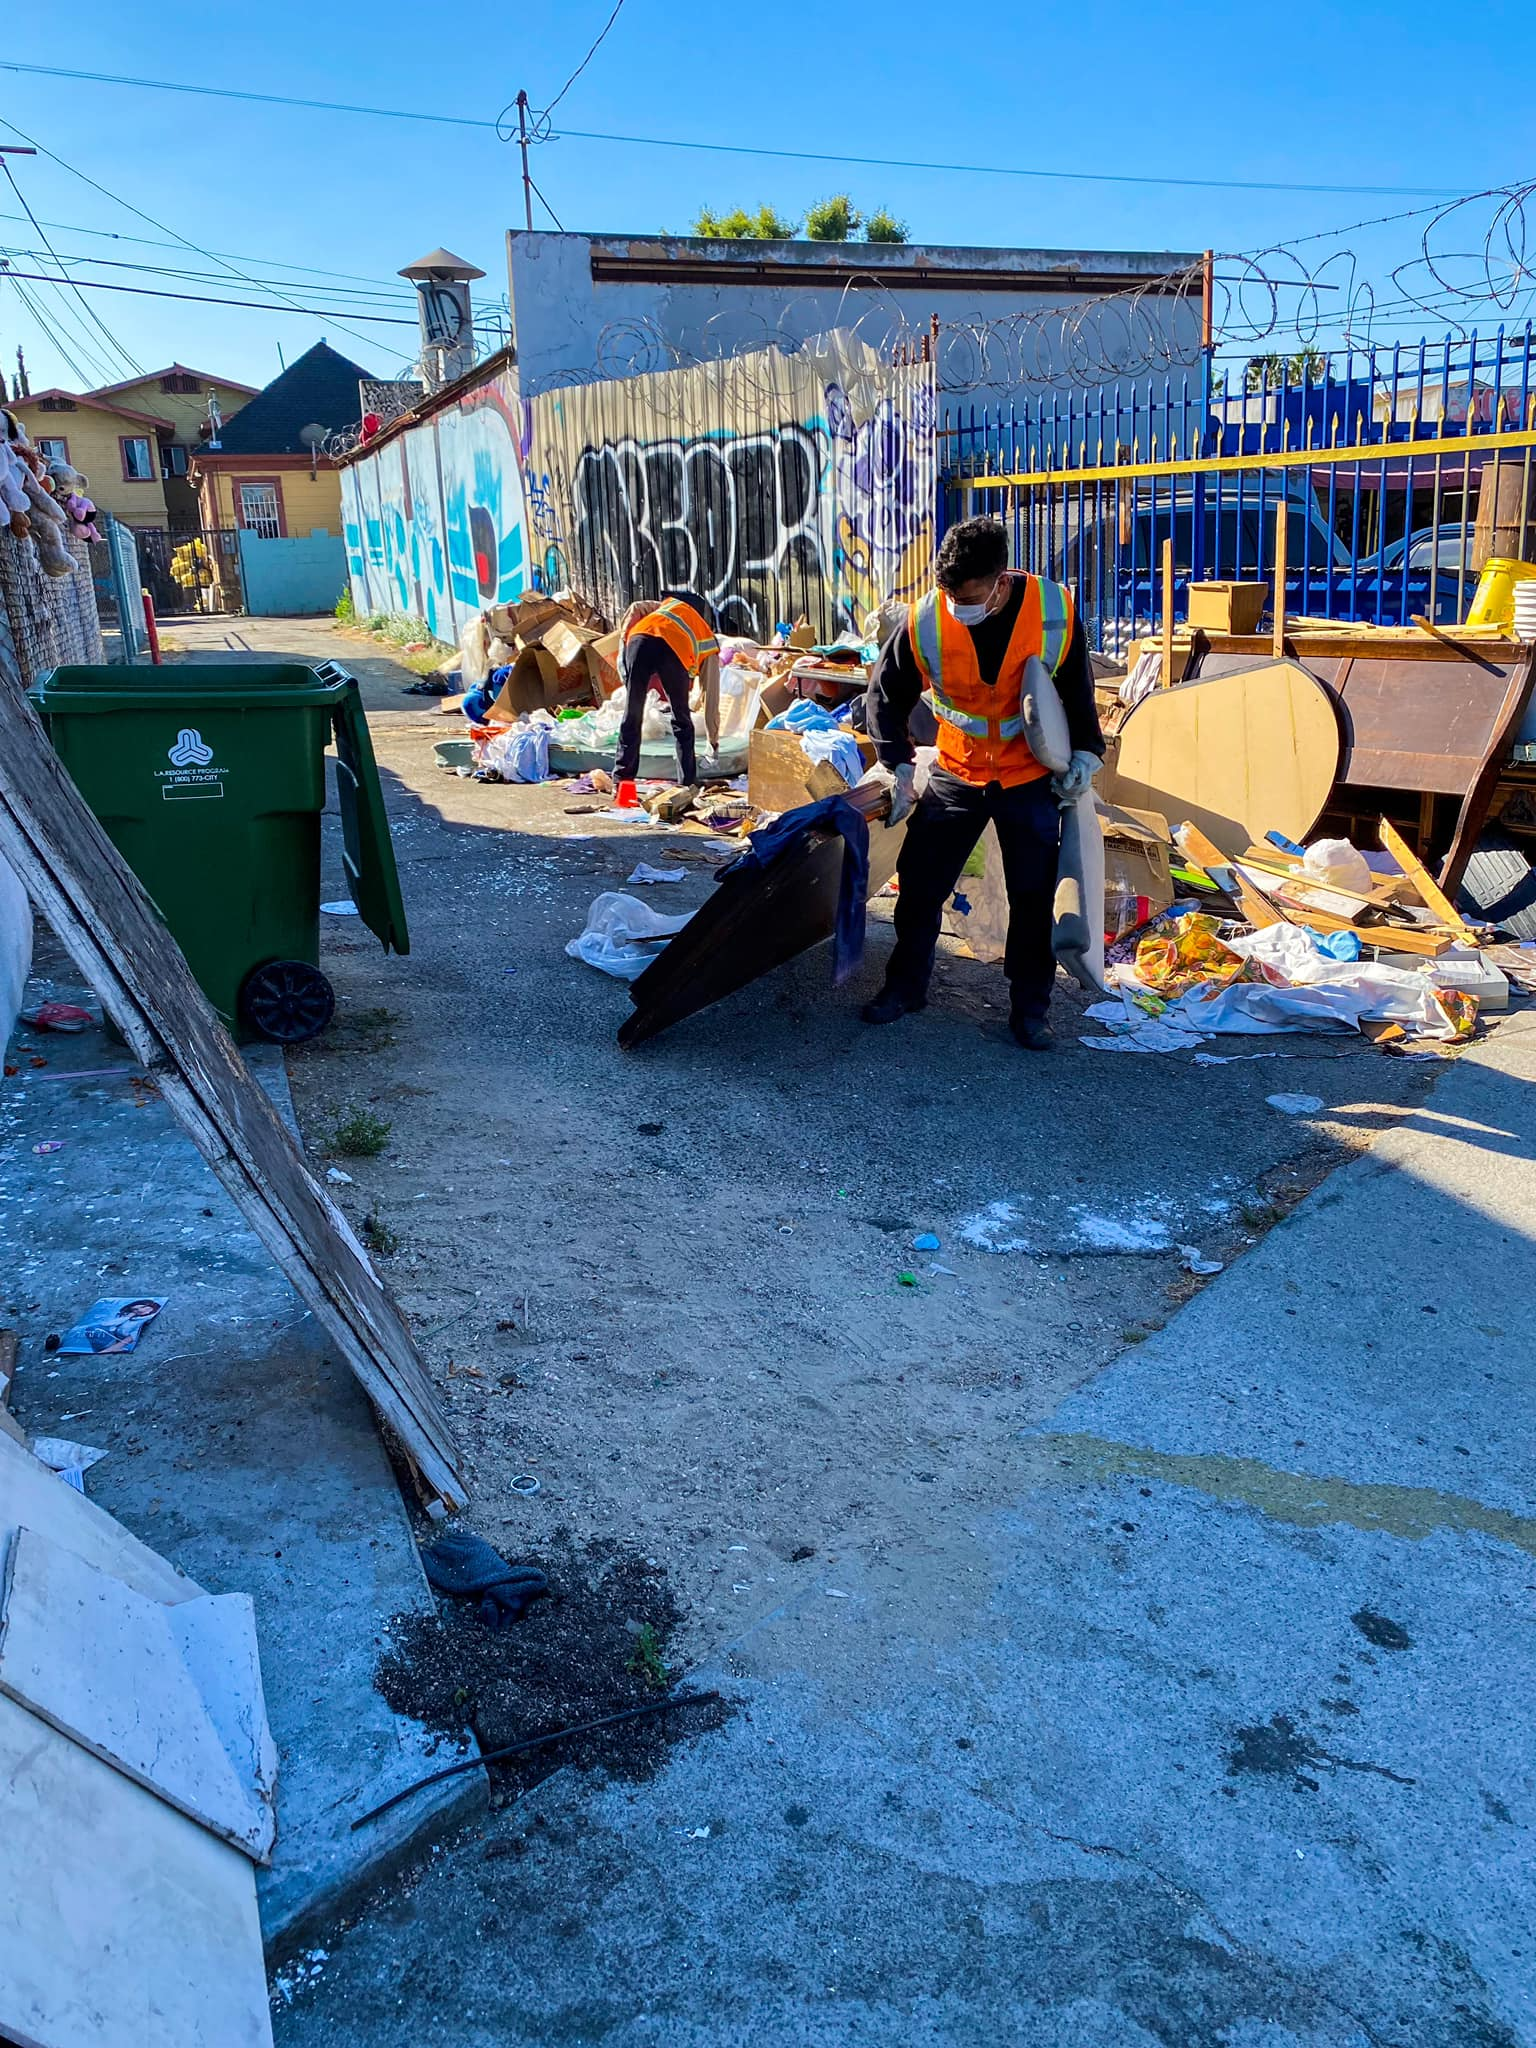 Councilmember Gil Cedillo's Strike Team cleaning alleys in Pico Union 6-14-2021 #2